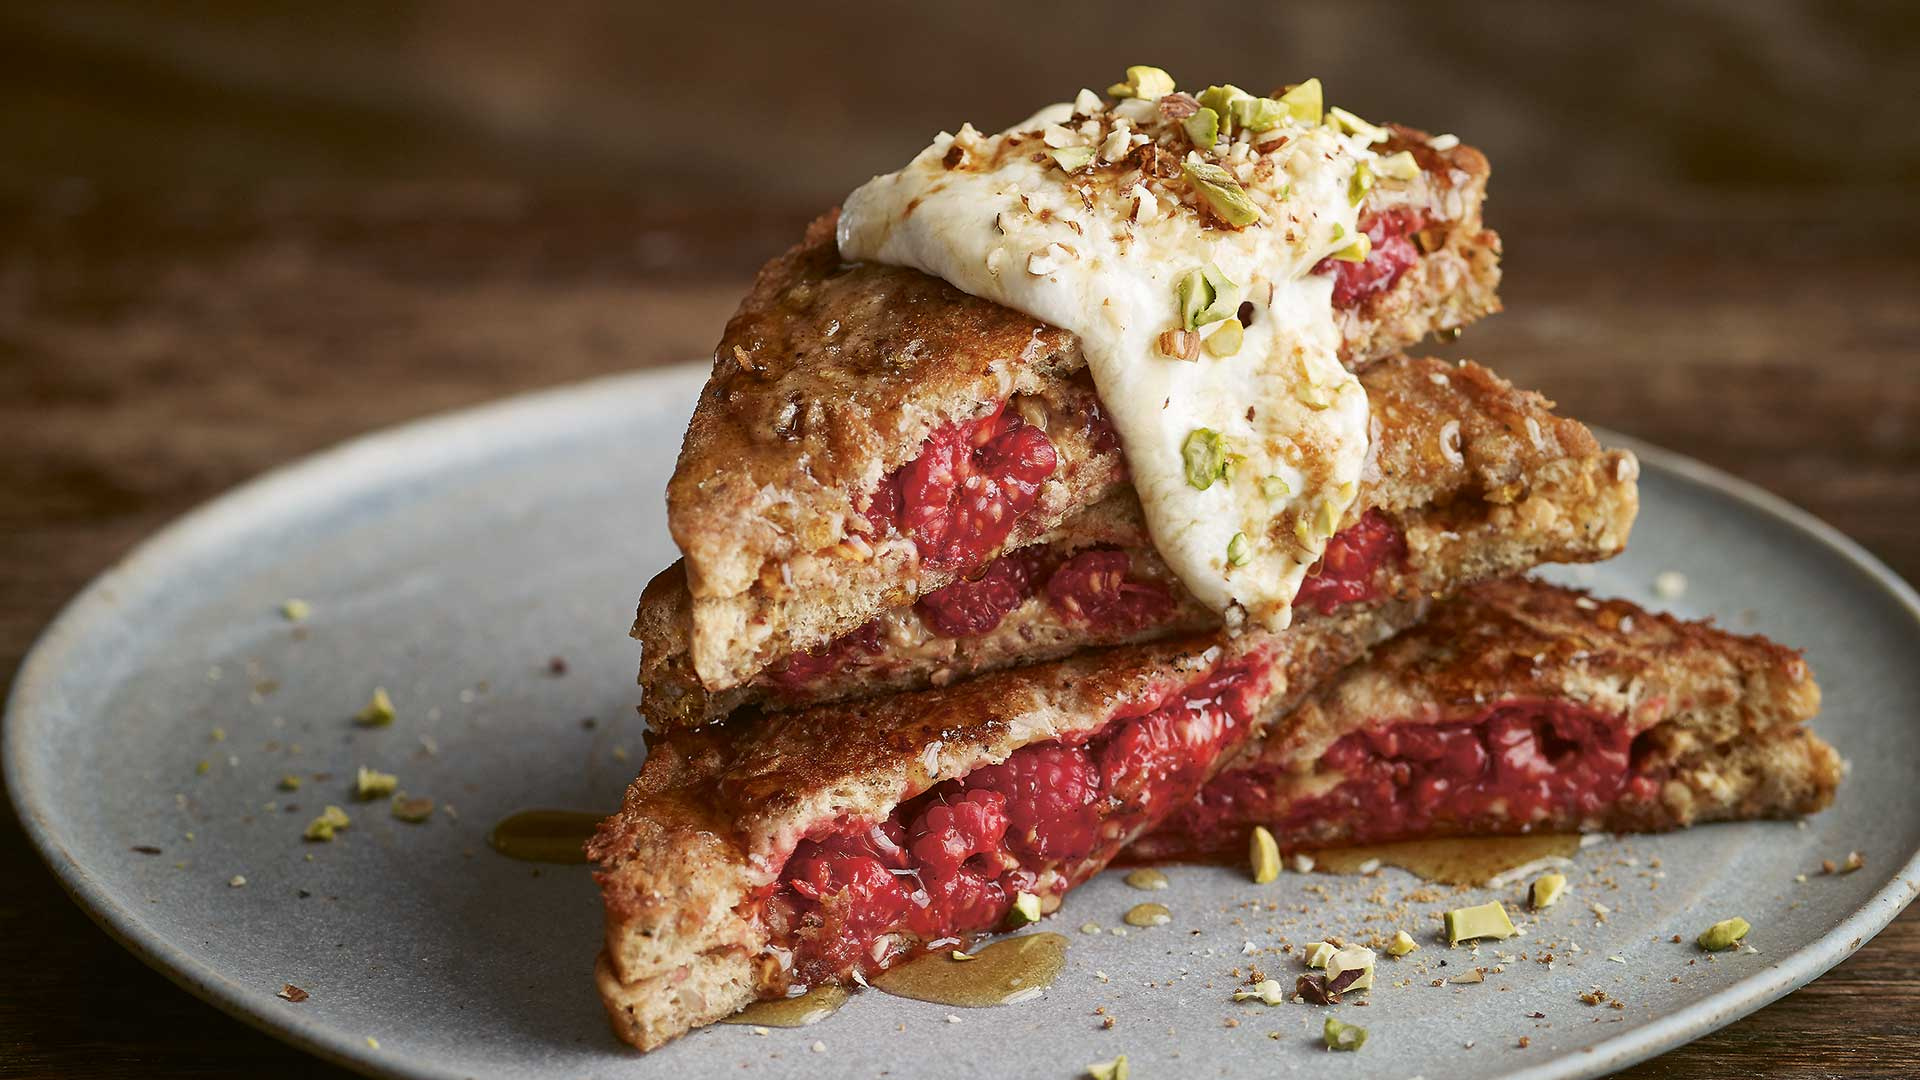 Smashed raspberry and almond butter vegan French Toast; photography: Nassima Rothacker